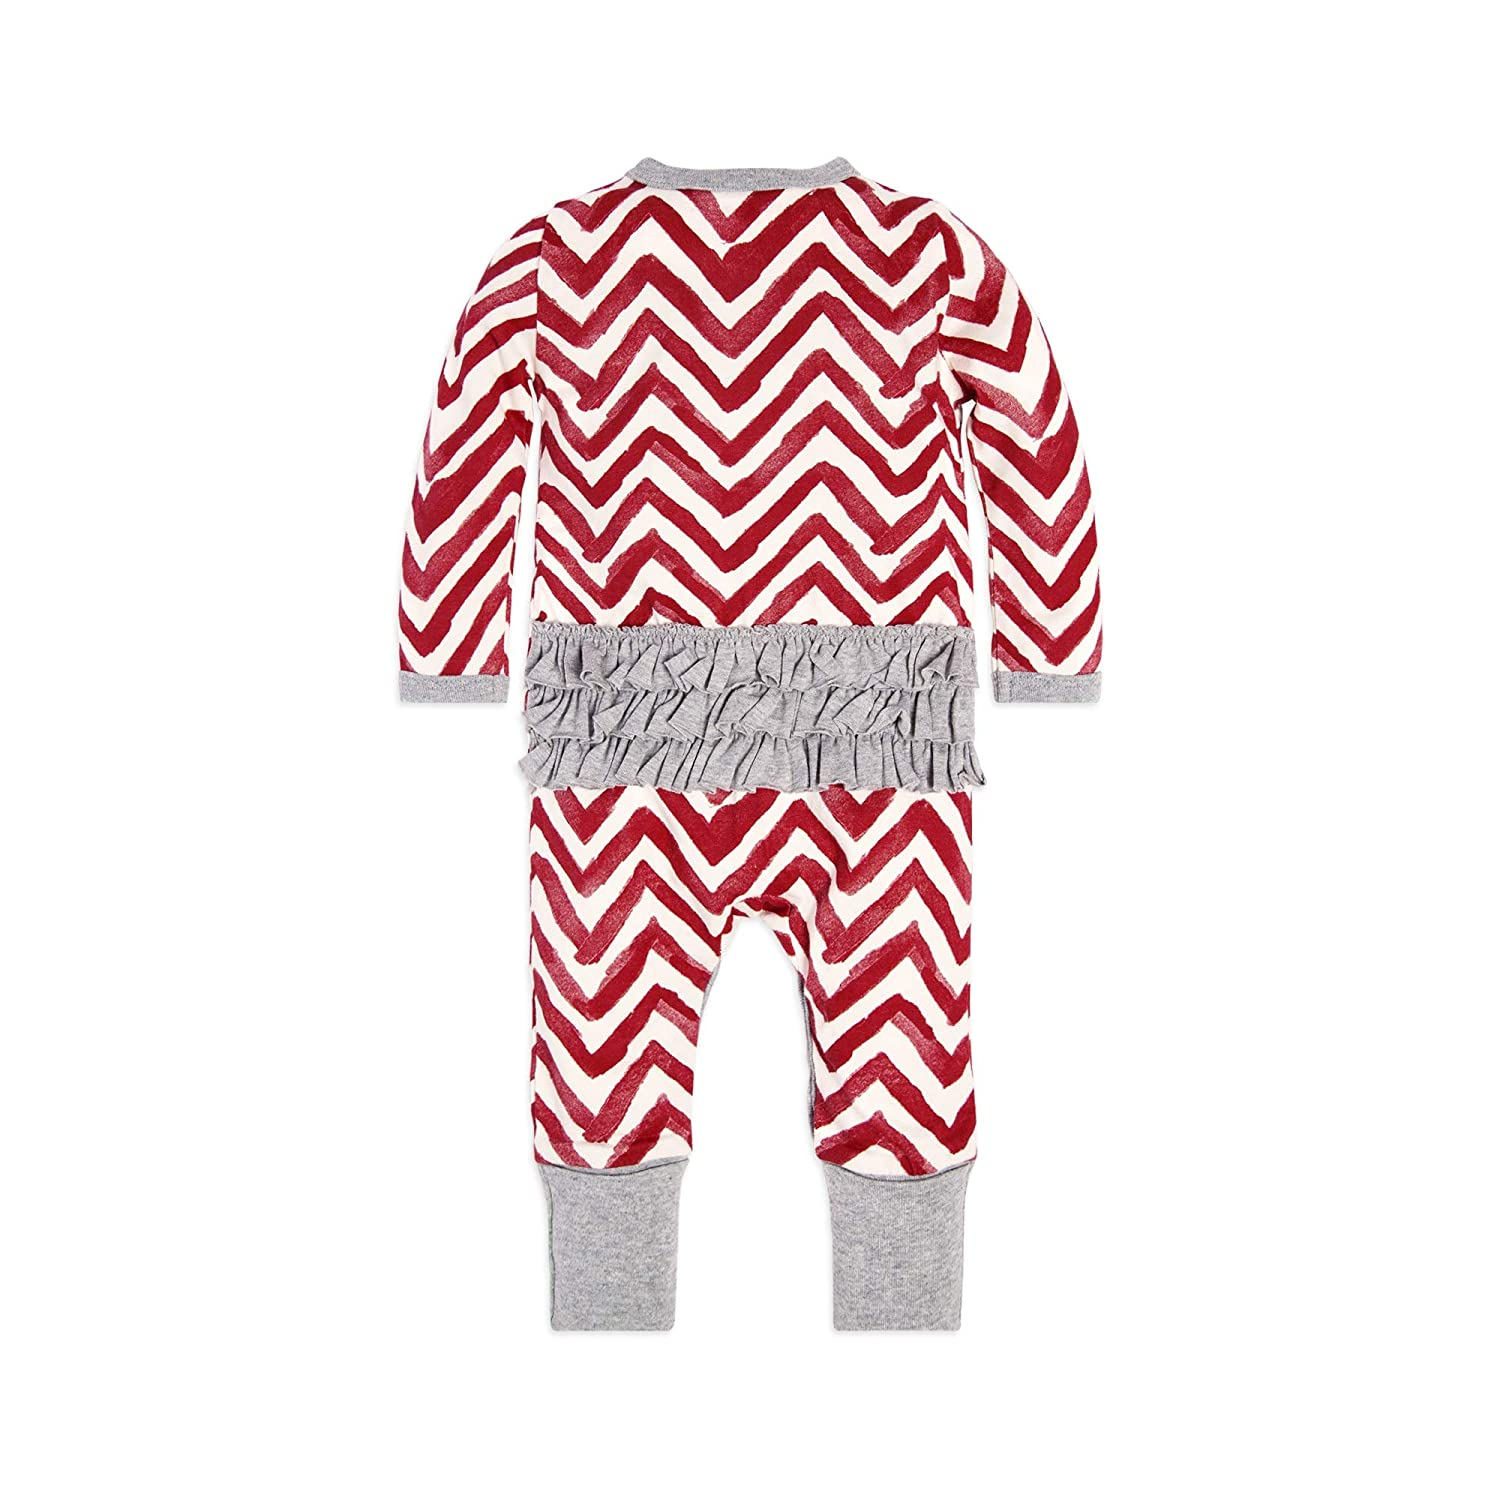 86b870447 Amazon.com: Burt's Bees Baby - Unisex Romper and Hat Set, One Piece  Jumpsuit and Beanie Set, 100% Organic Cotton: Clothing